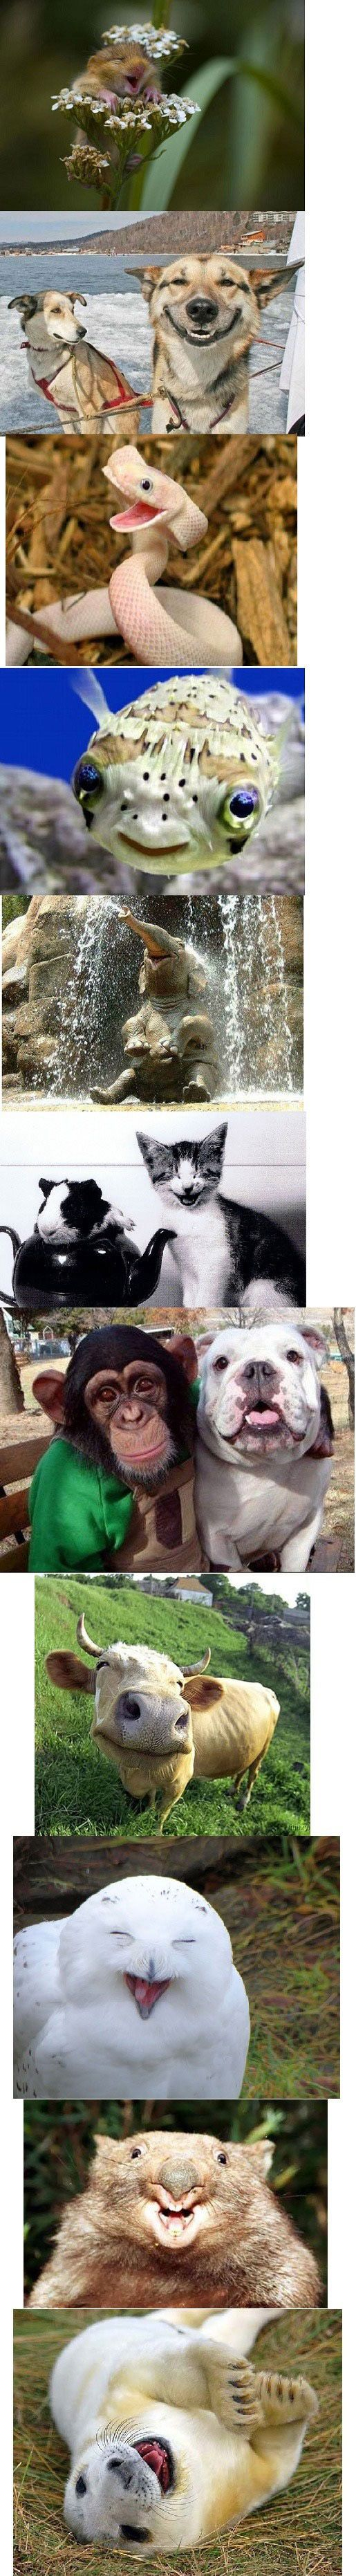 Animales felices.